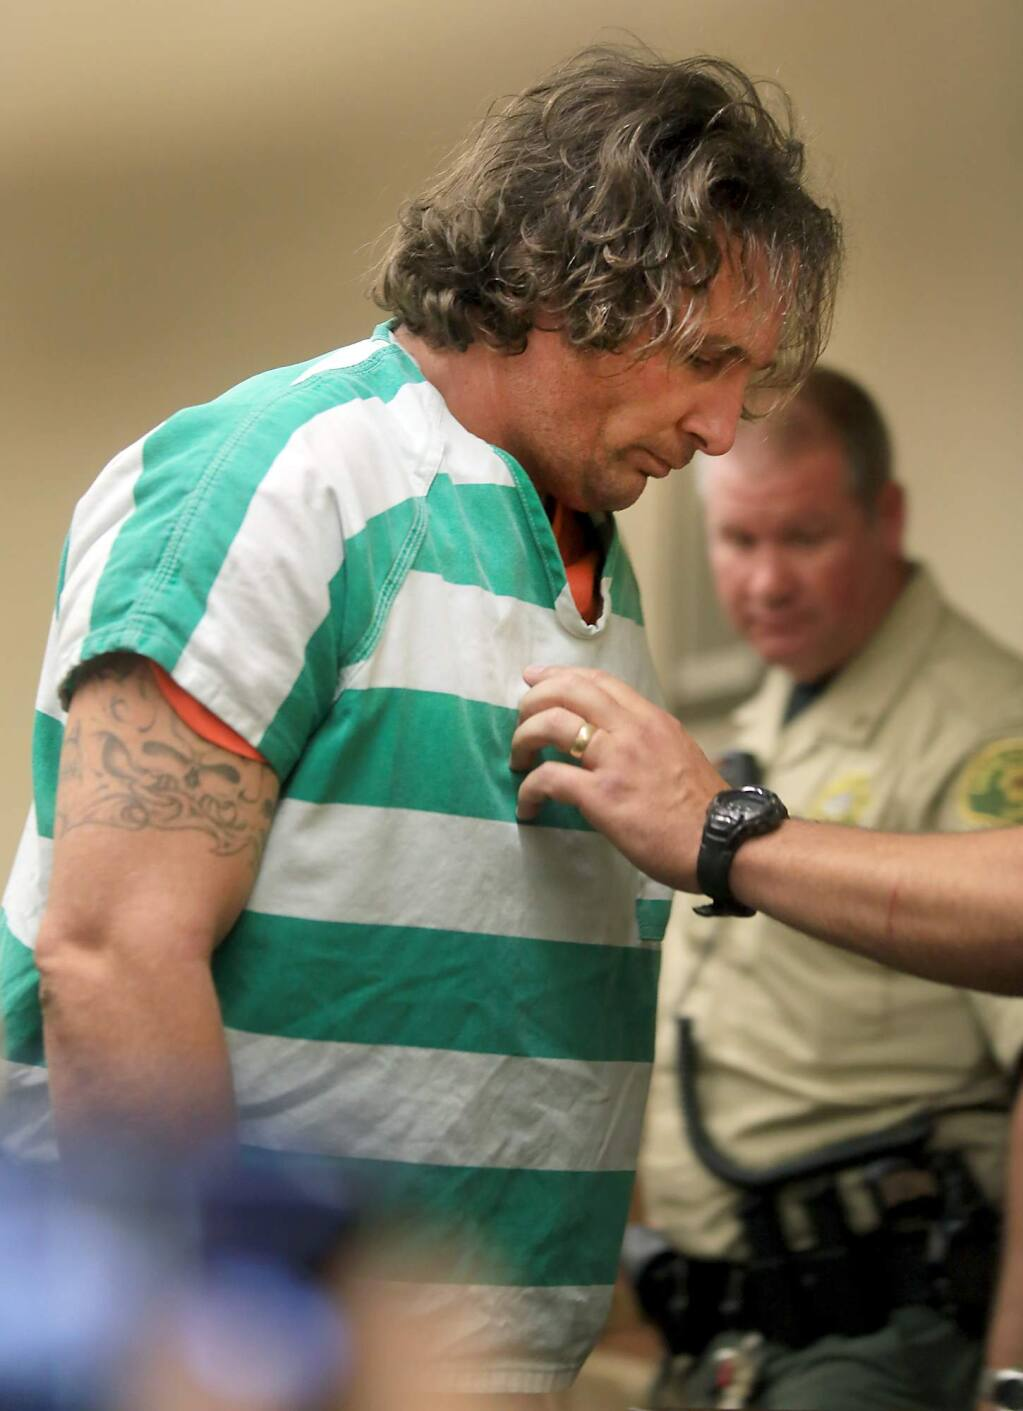 Damin Pashilk, 40, is taken from Lake County Superior Court, Wednesday August 17, 2016 after facing charges of arson in setting the Clayton fire in Lower Lake in Lake County. He did not enter a plea and the case was set over until September. Pashilk is resident of Lake County and faces numerous counts of arson dating back to 2015. (Kent Porter / Press Democrat) 2016